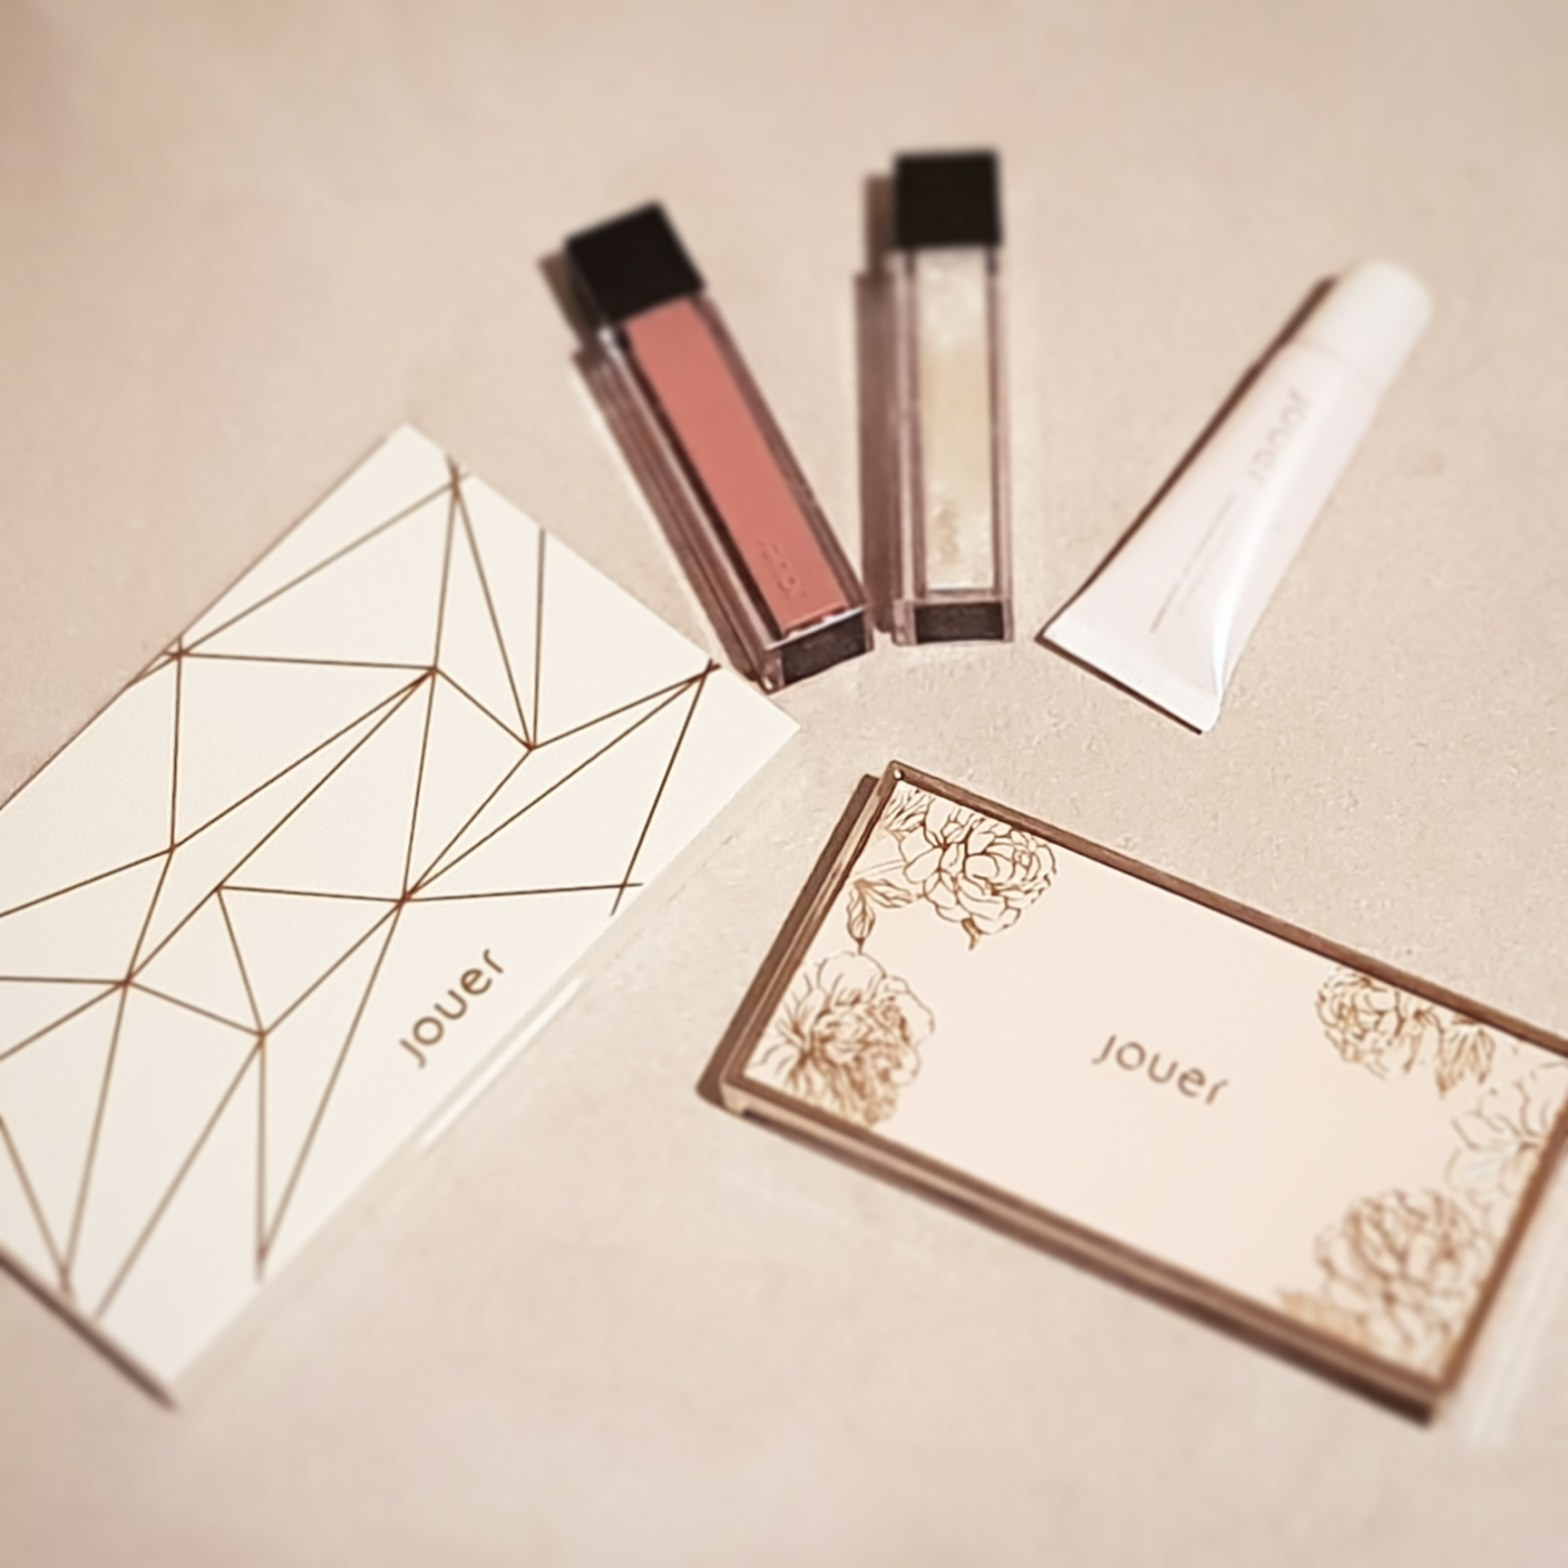 Jouer products